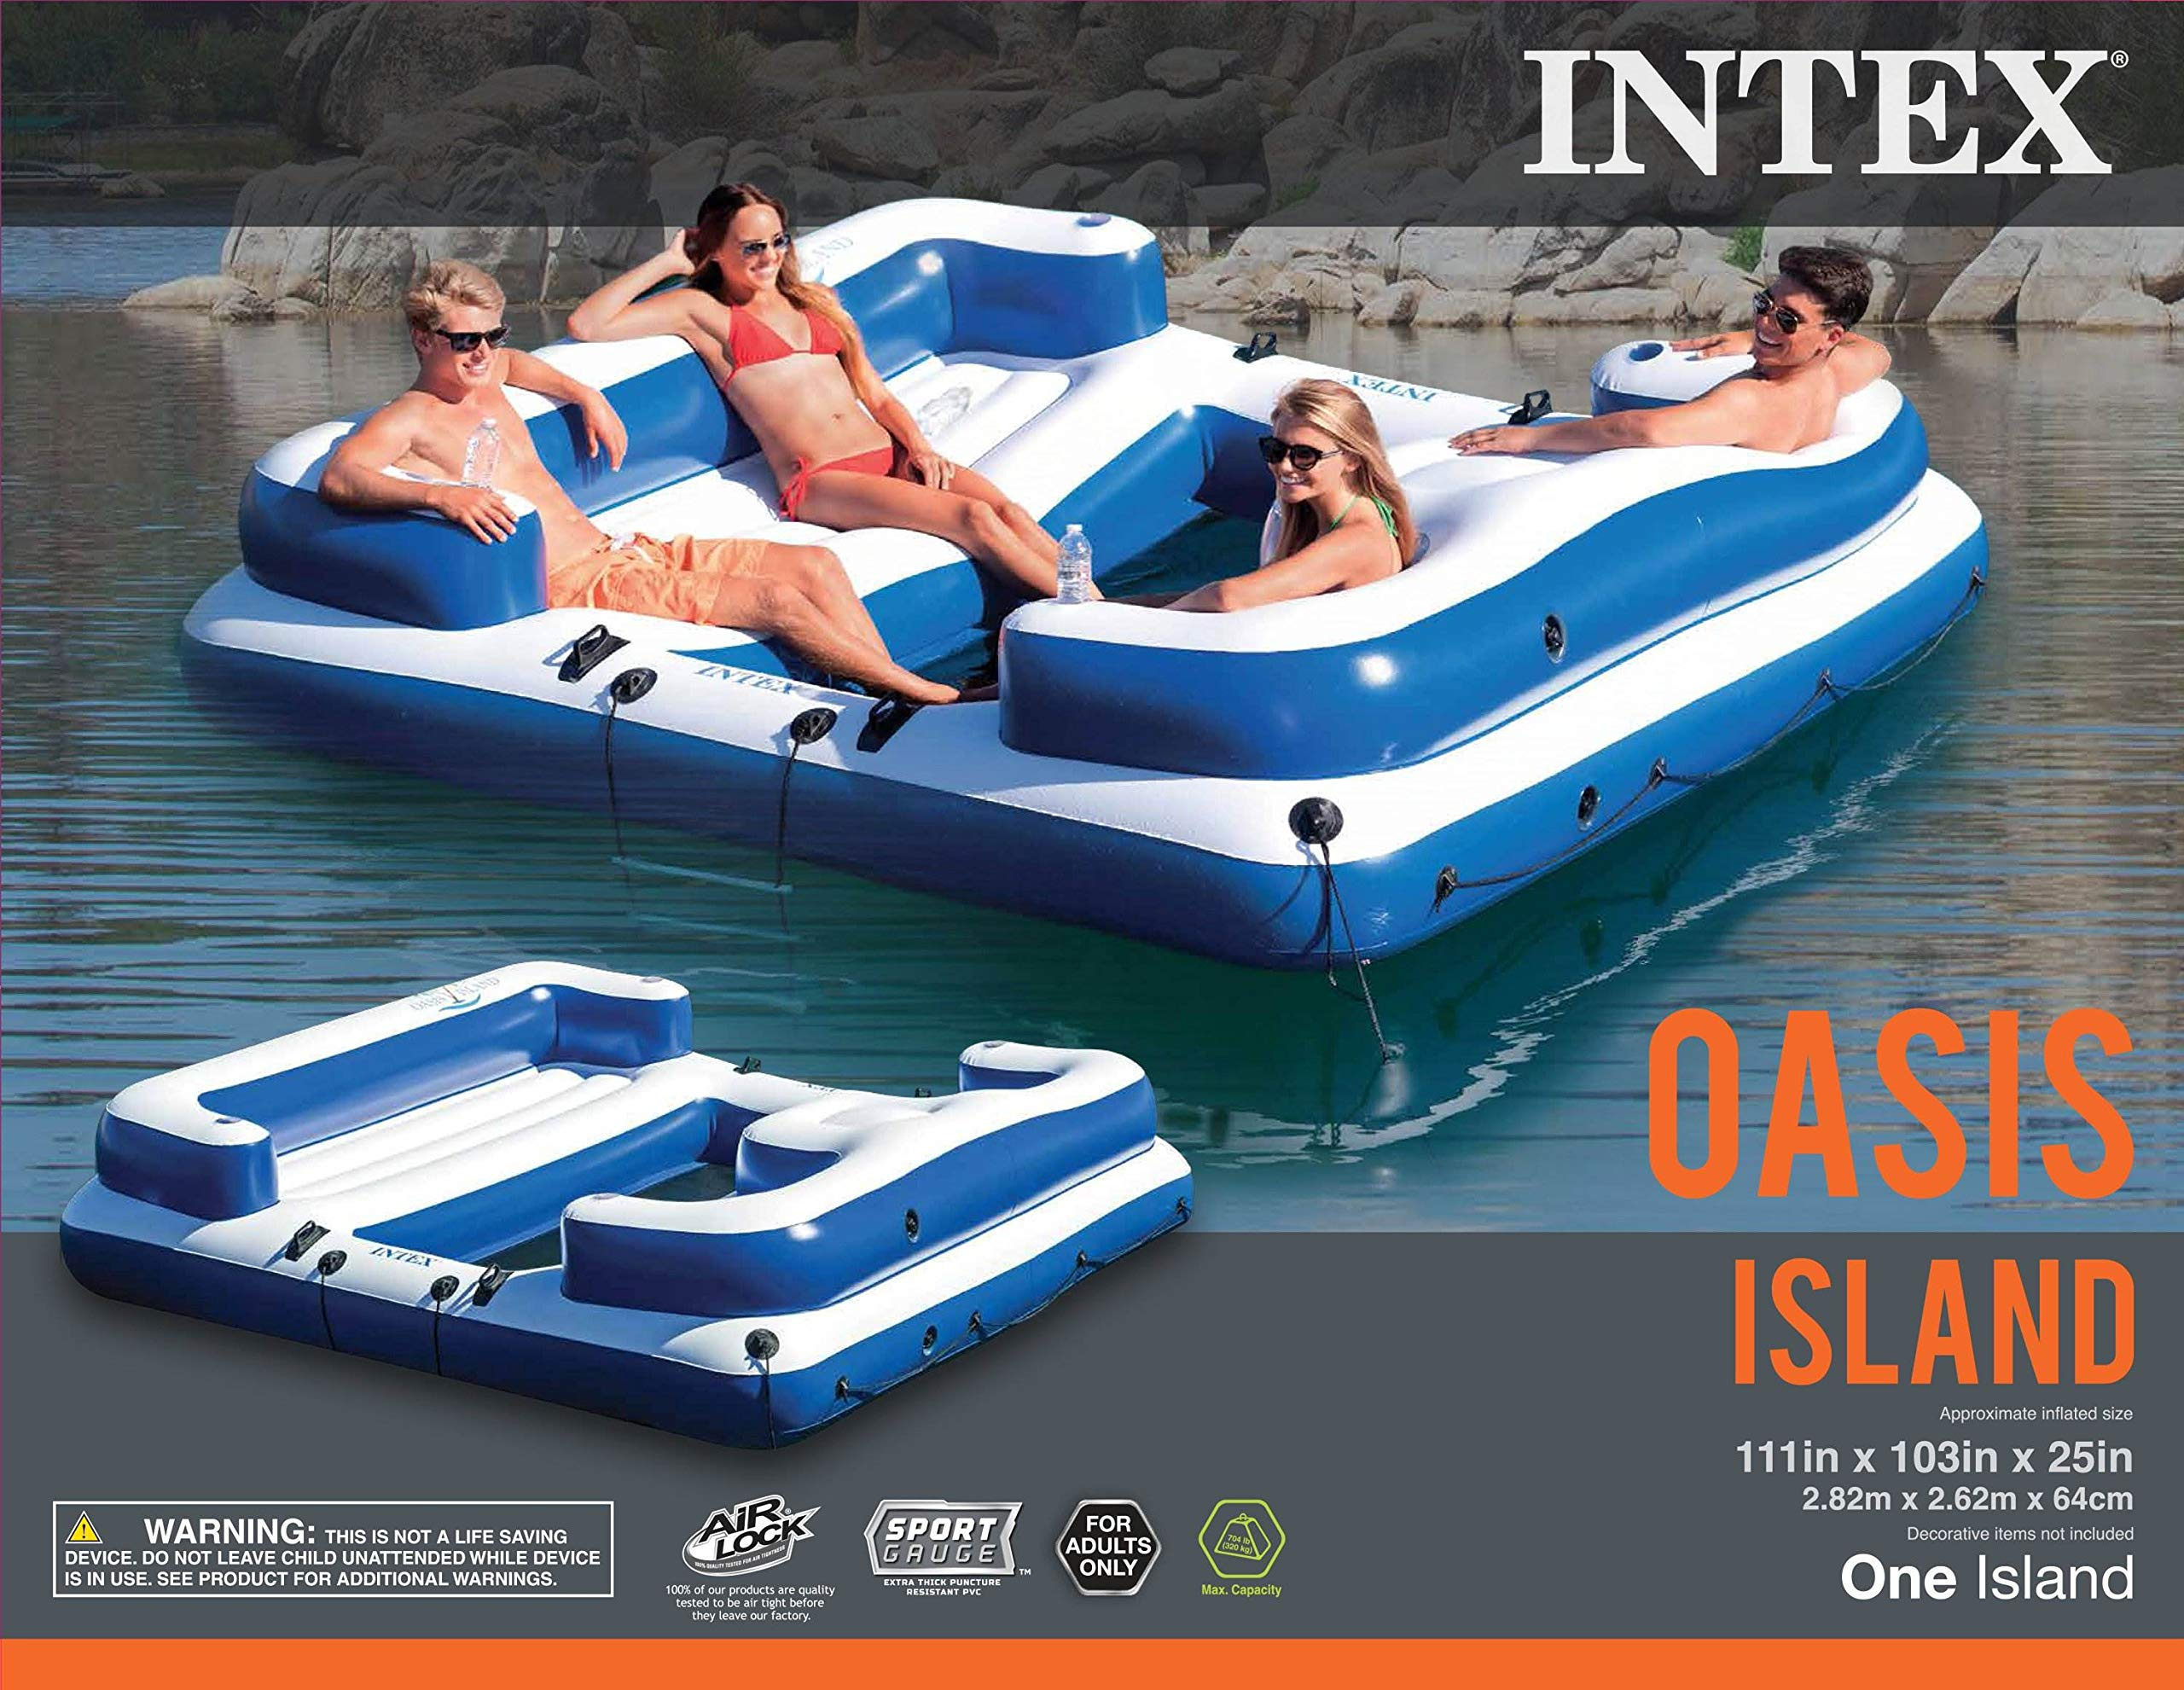 Intex Oasis Island Inflatable 5-Seater Lake/River Floating Lounge ...